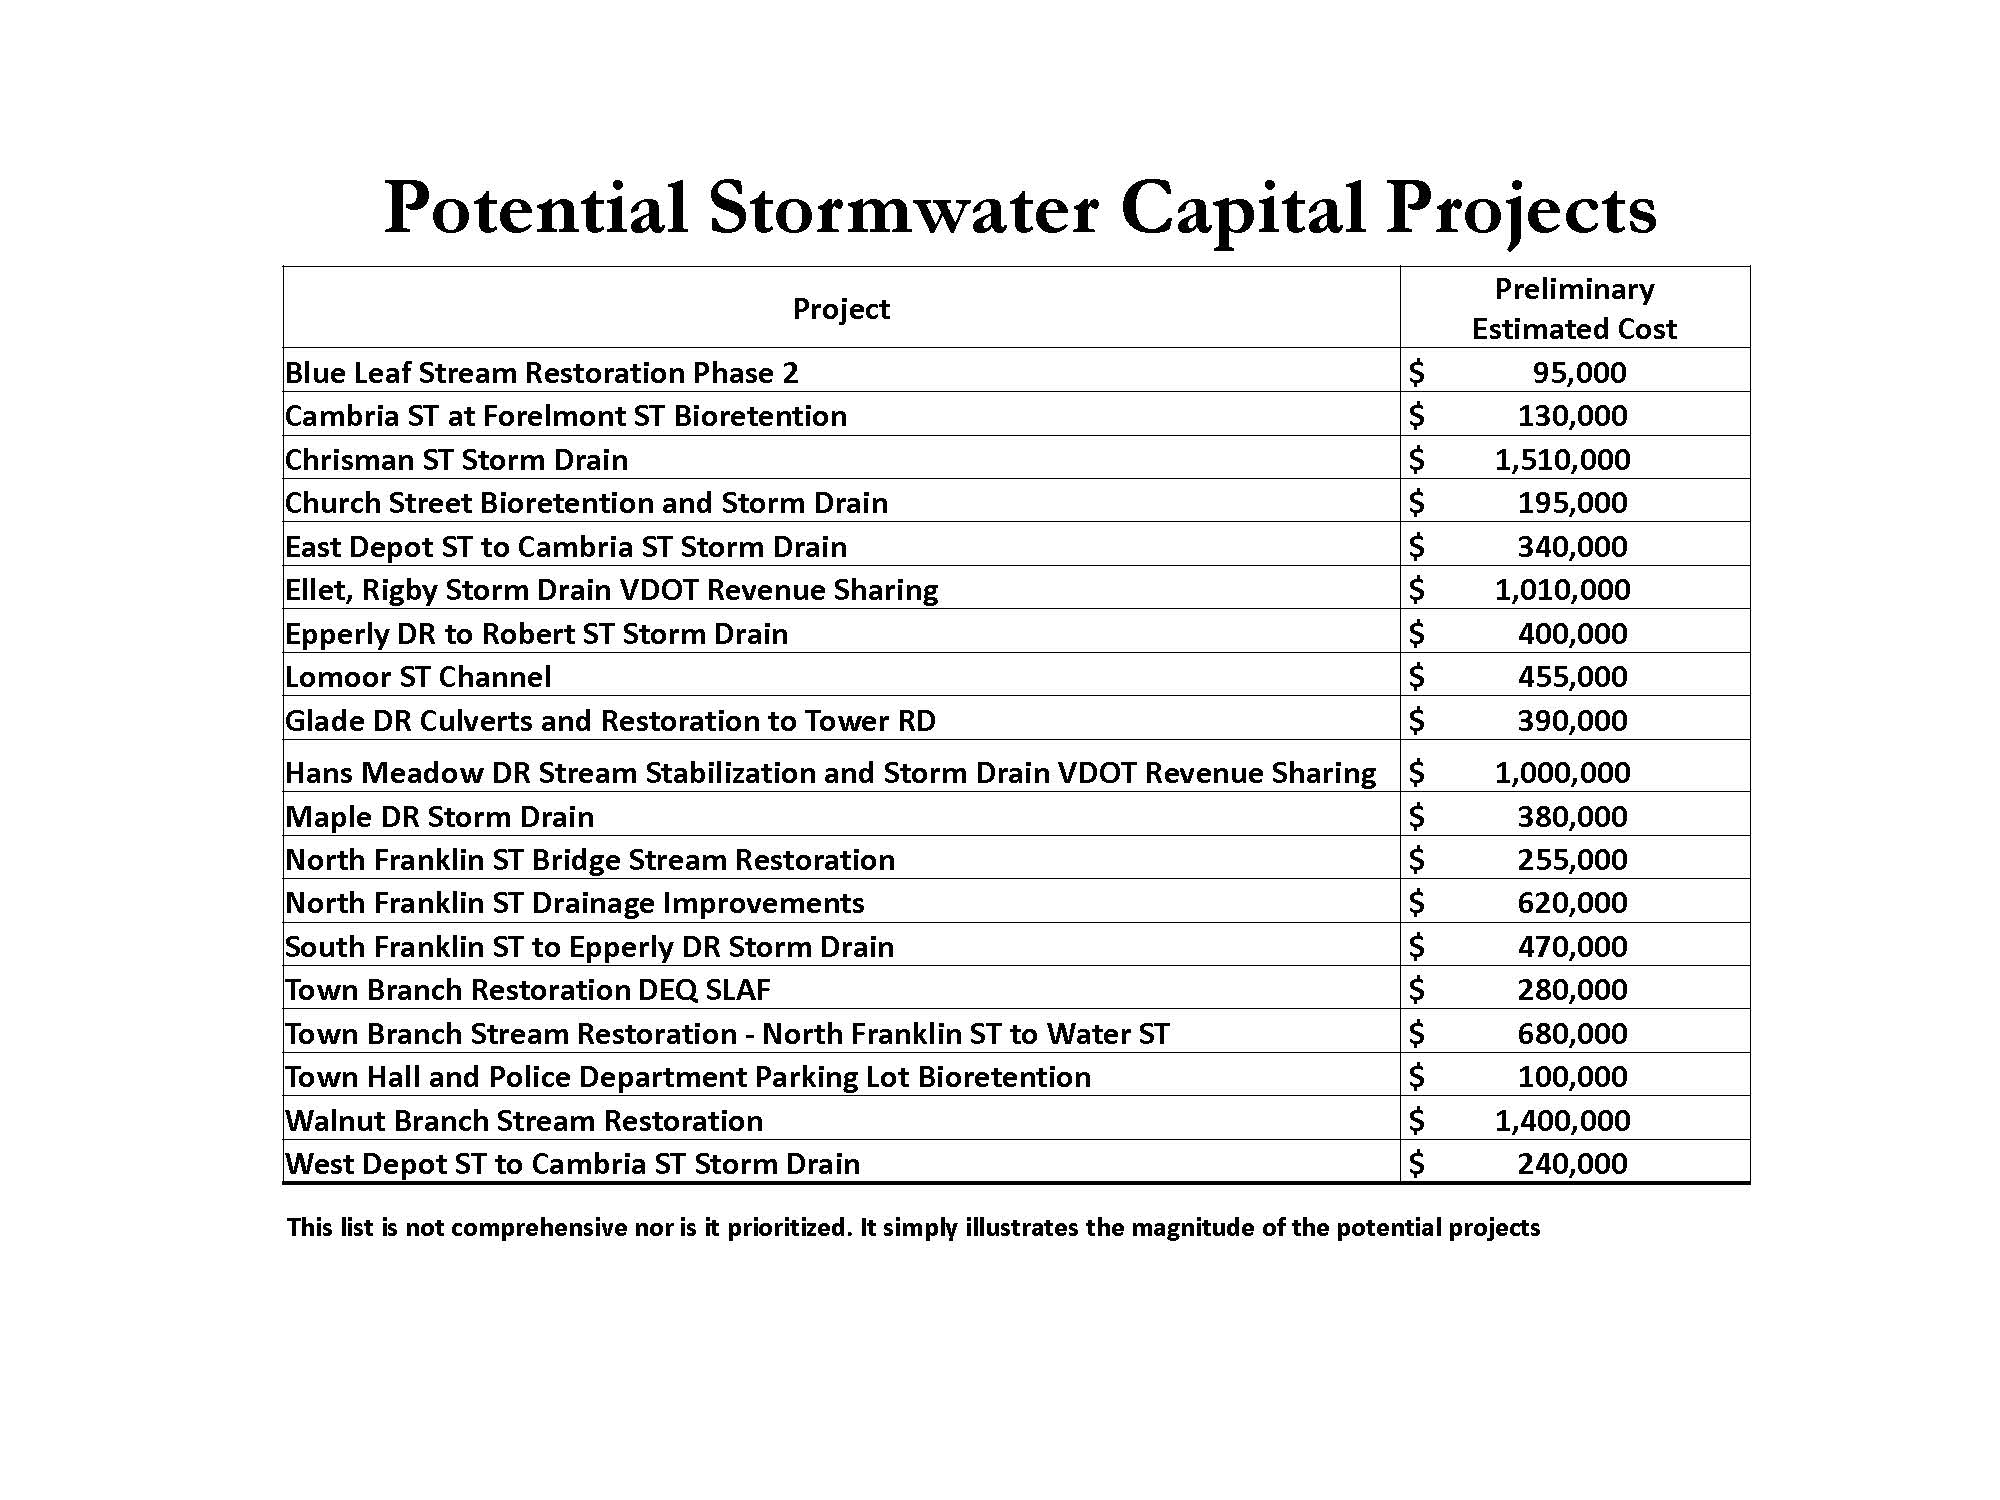 Potential Stormwater Capital Projects.jpg